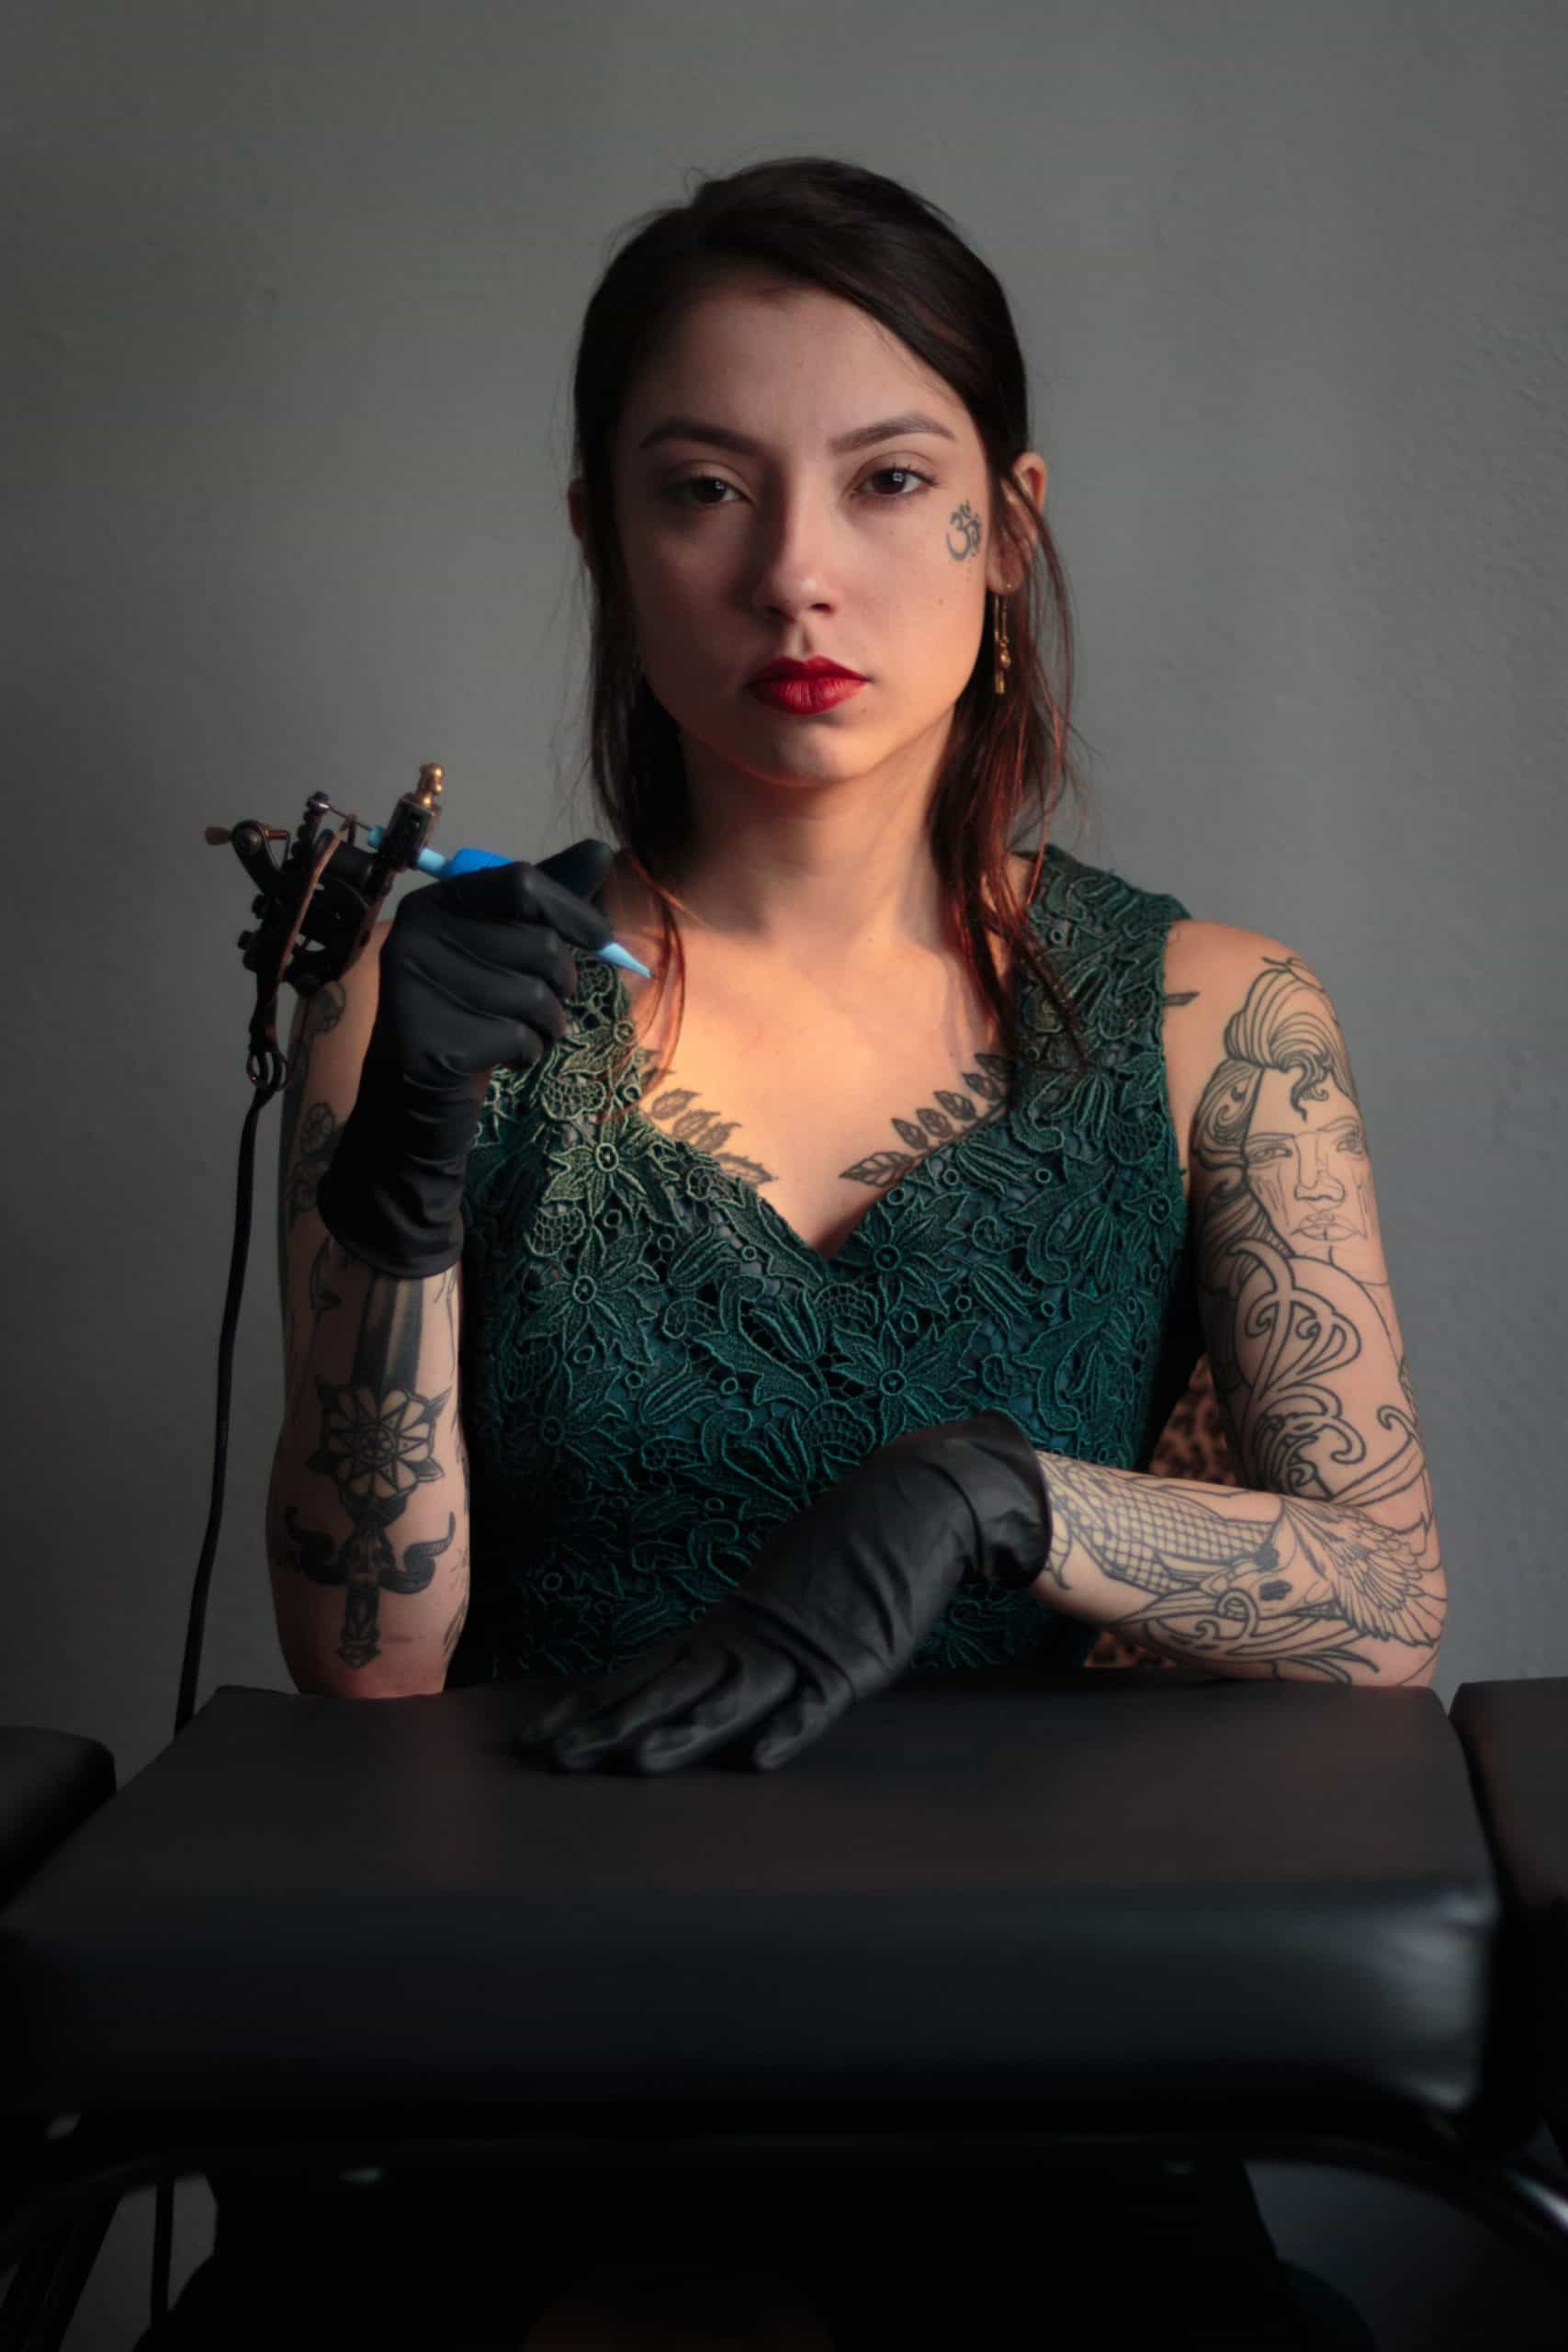 How To Be A Good Tattoo Creator – Effective Tips To Consider